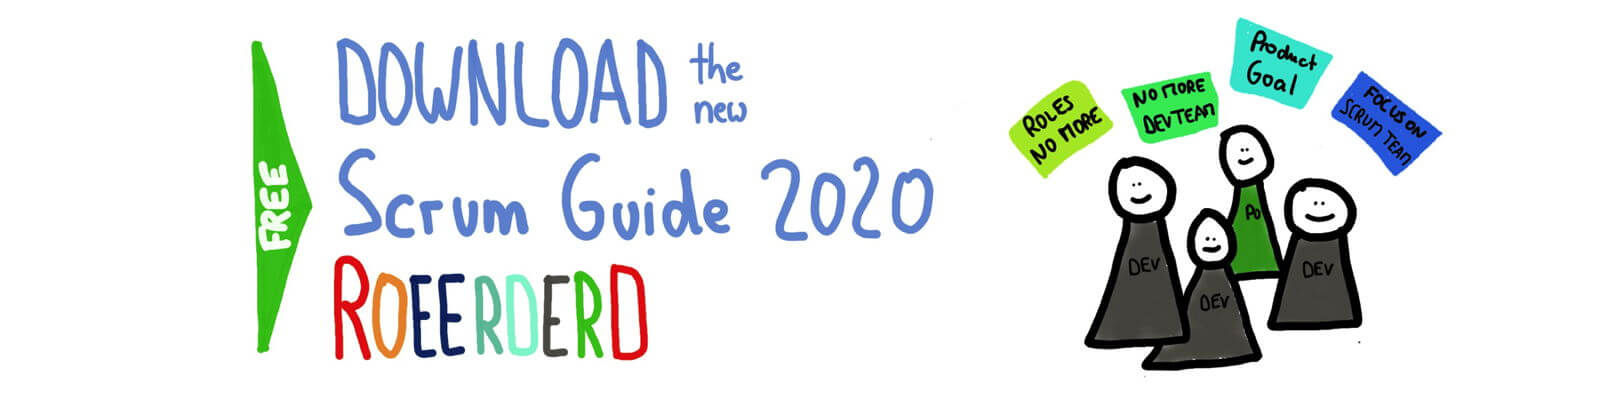 Scrum Guide 2020 —Download the new edition of the Scrum Guide Reordered —Age-of-Product.com